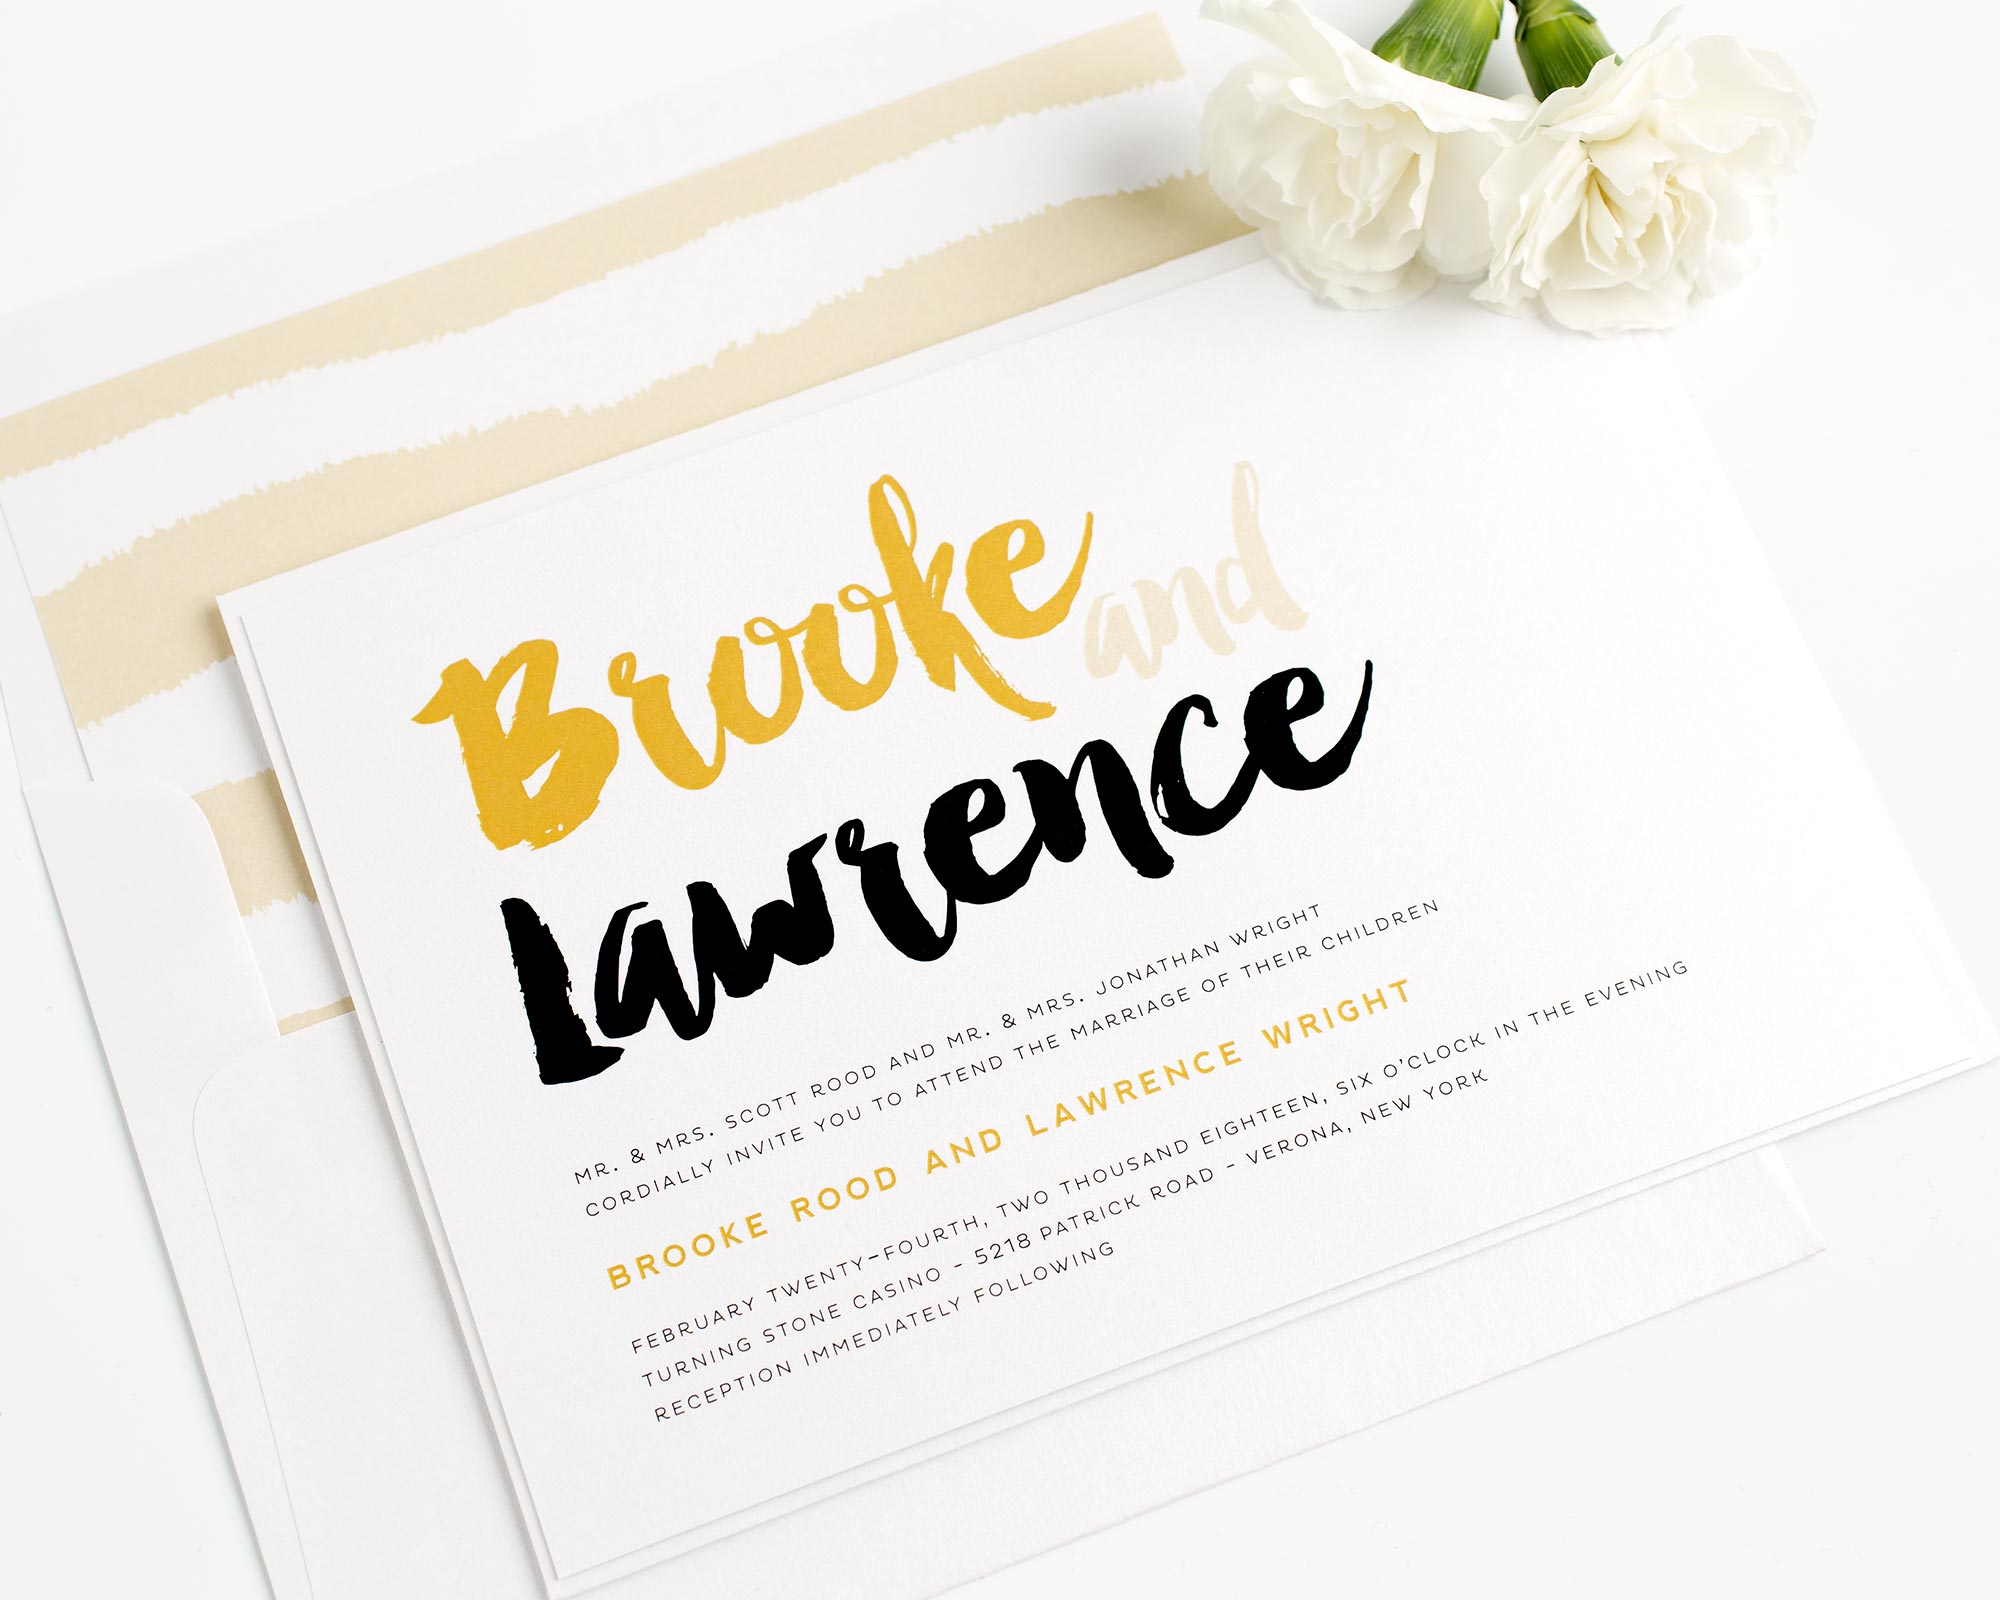 Modern Strokes Wedding Invitations in Gold and Black